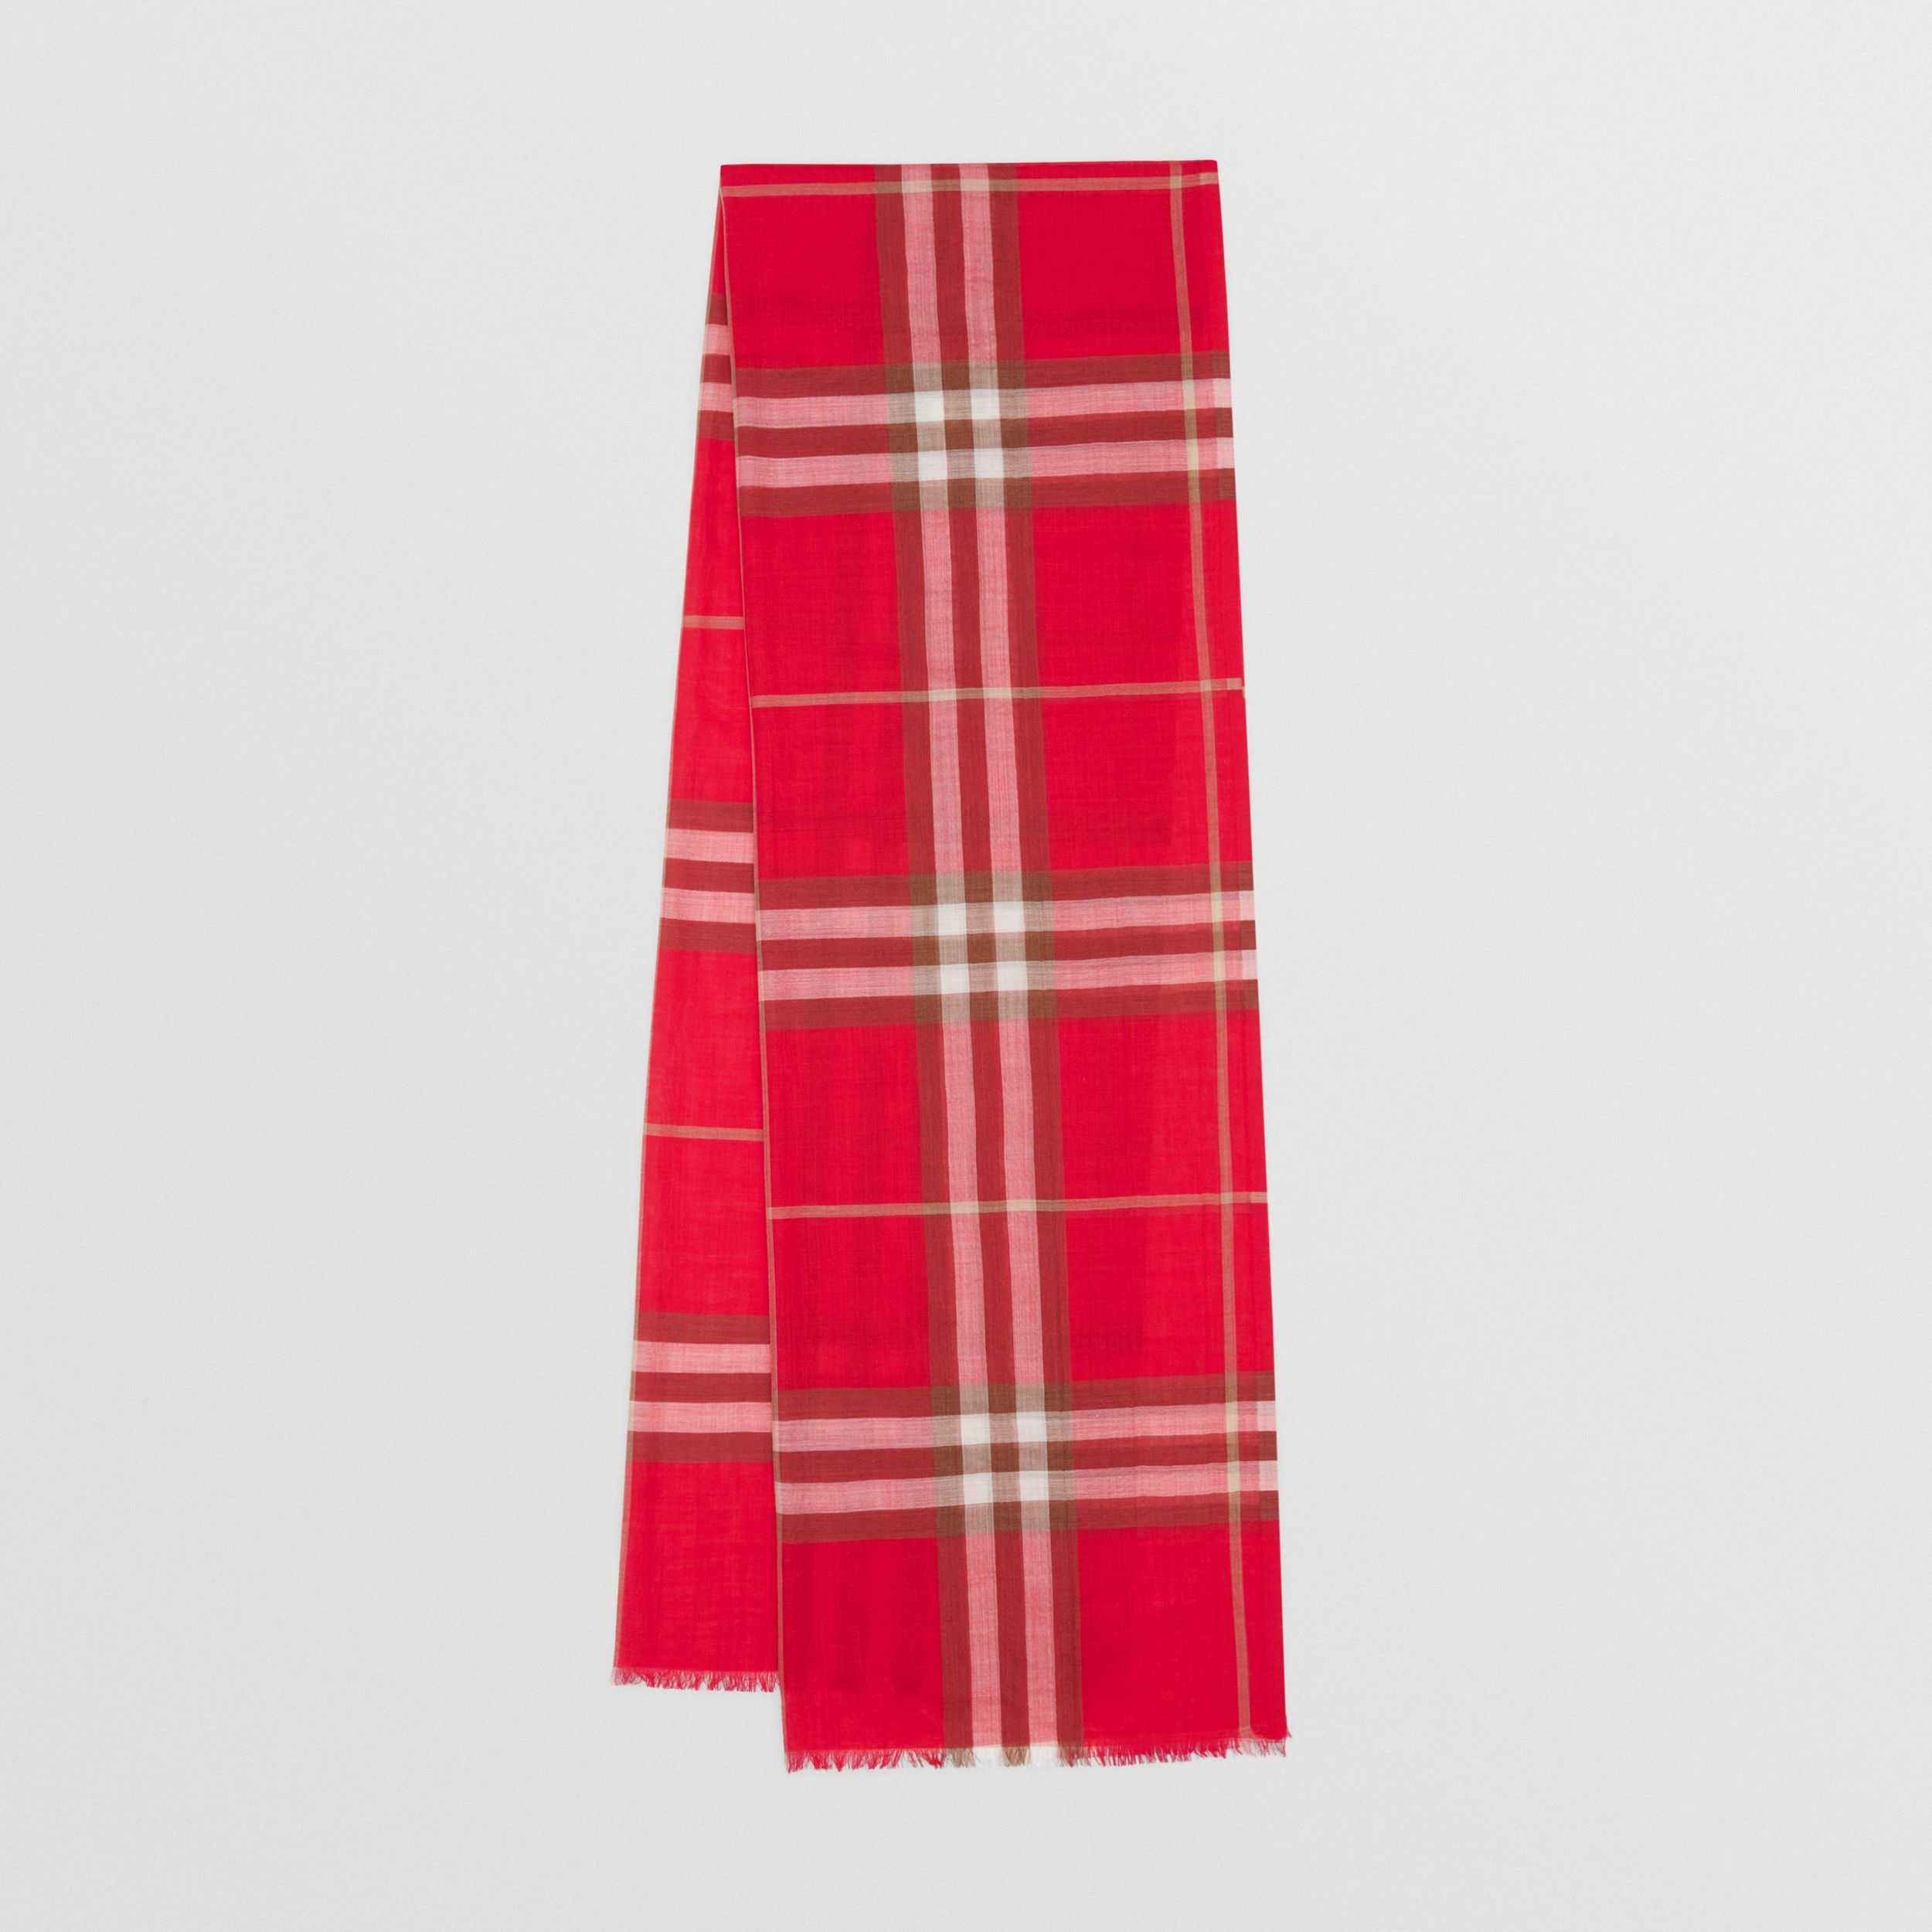 Lightweight Check Wool Silk Scarf in Bright Red | Burberry Australia - 1